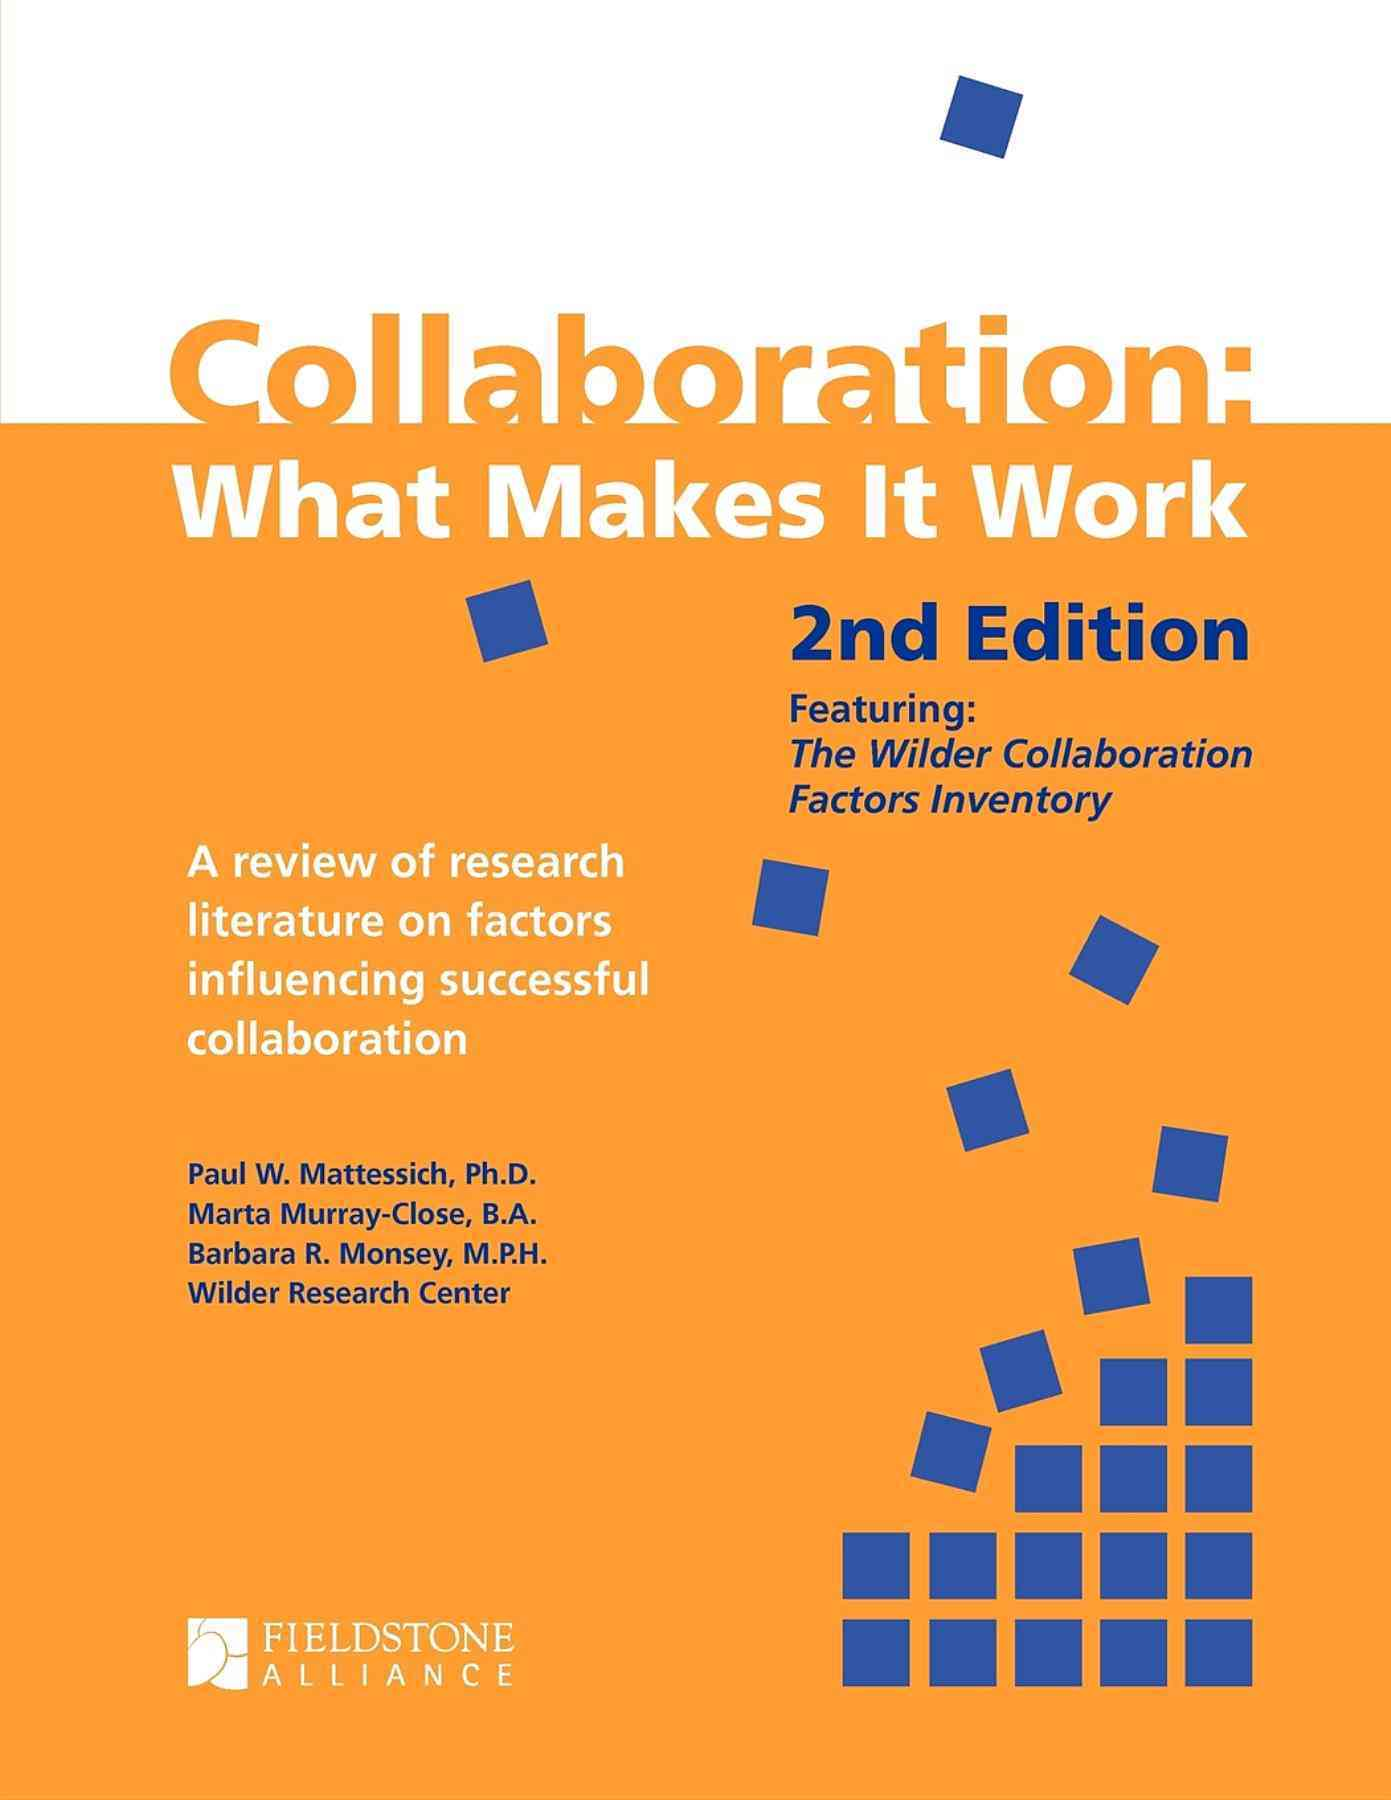 Collaboration By Mattessich, Paul W./ Murray-Close, Marta/ Monsey, Barbara R./ Amherst H. Wilder Foundation (COR)